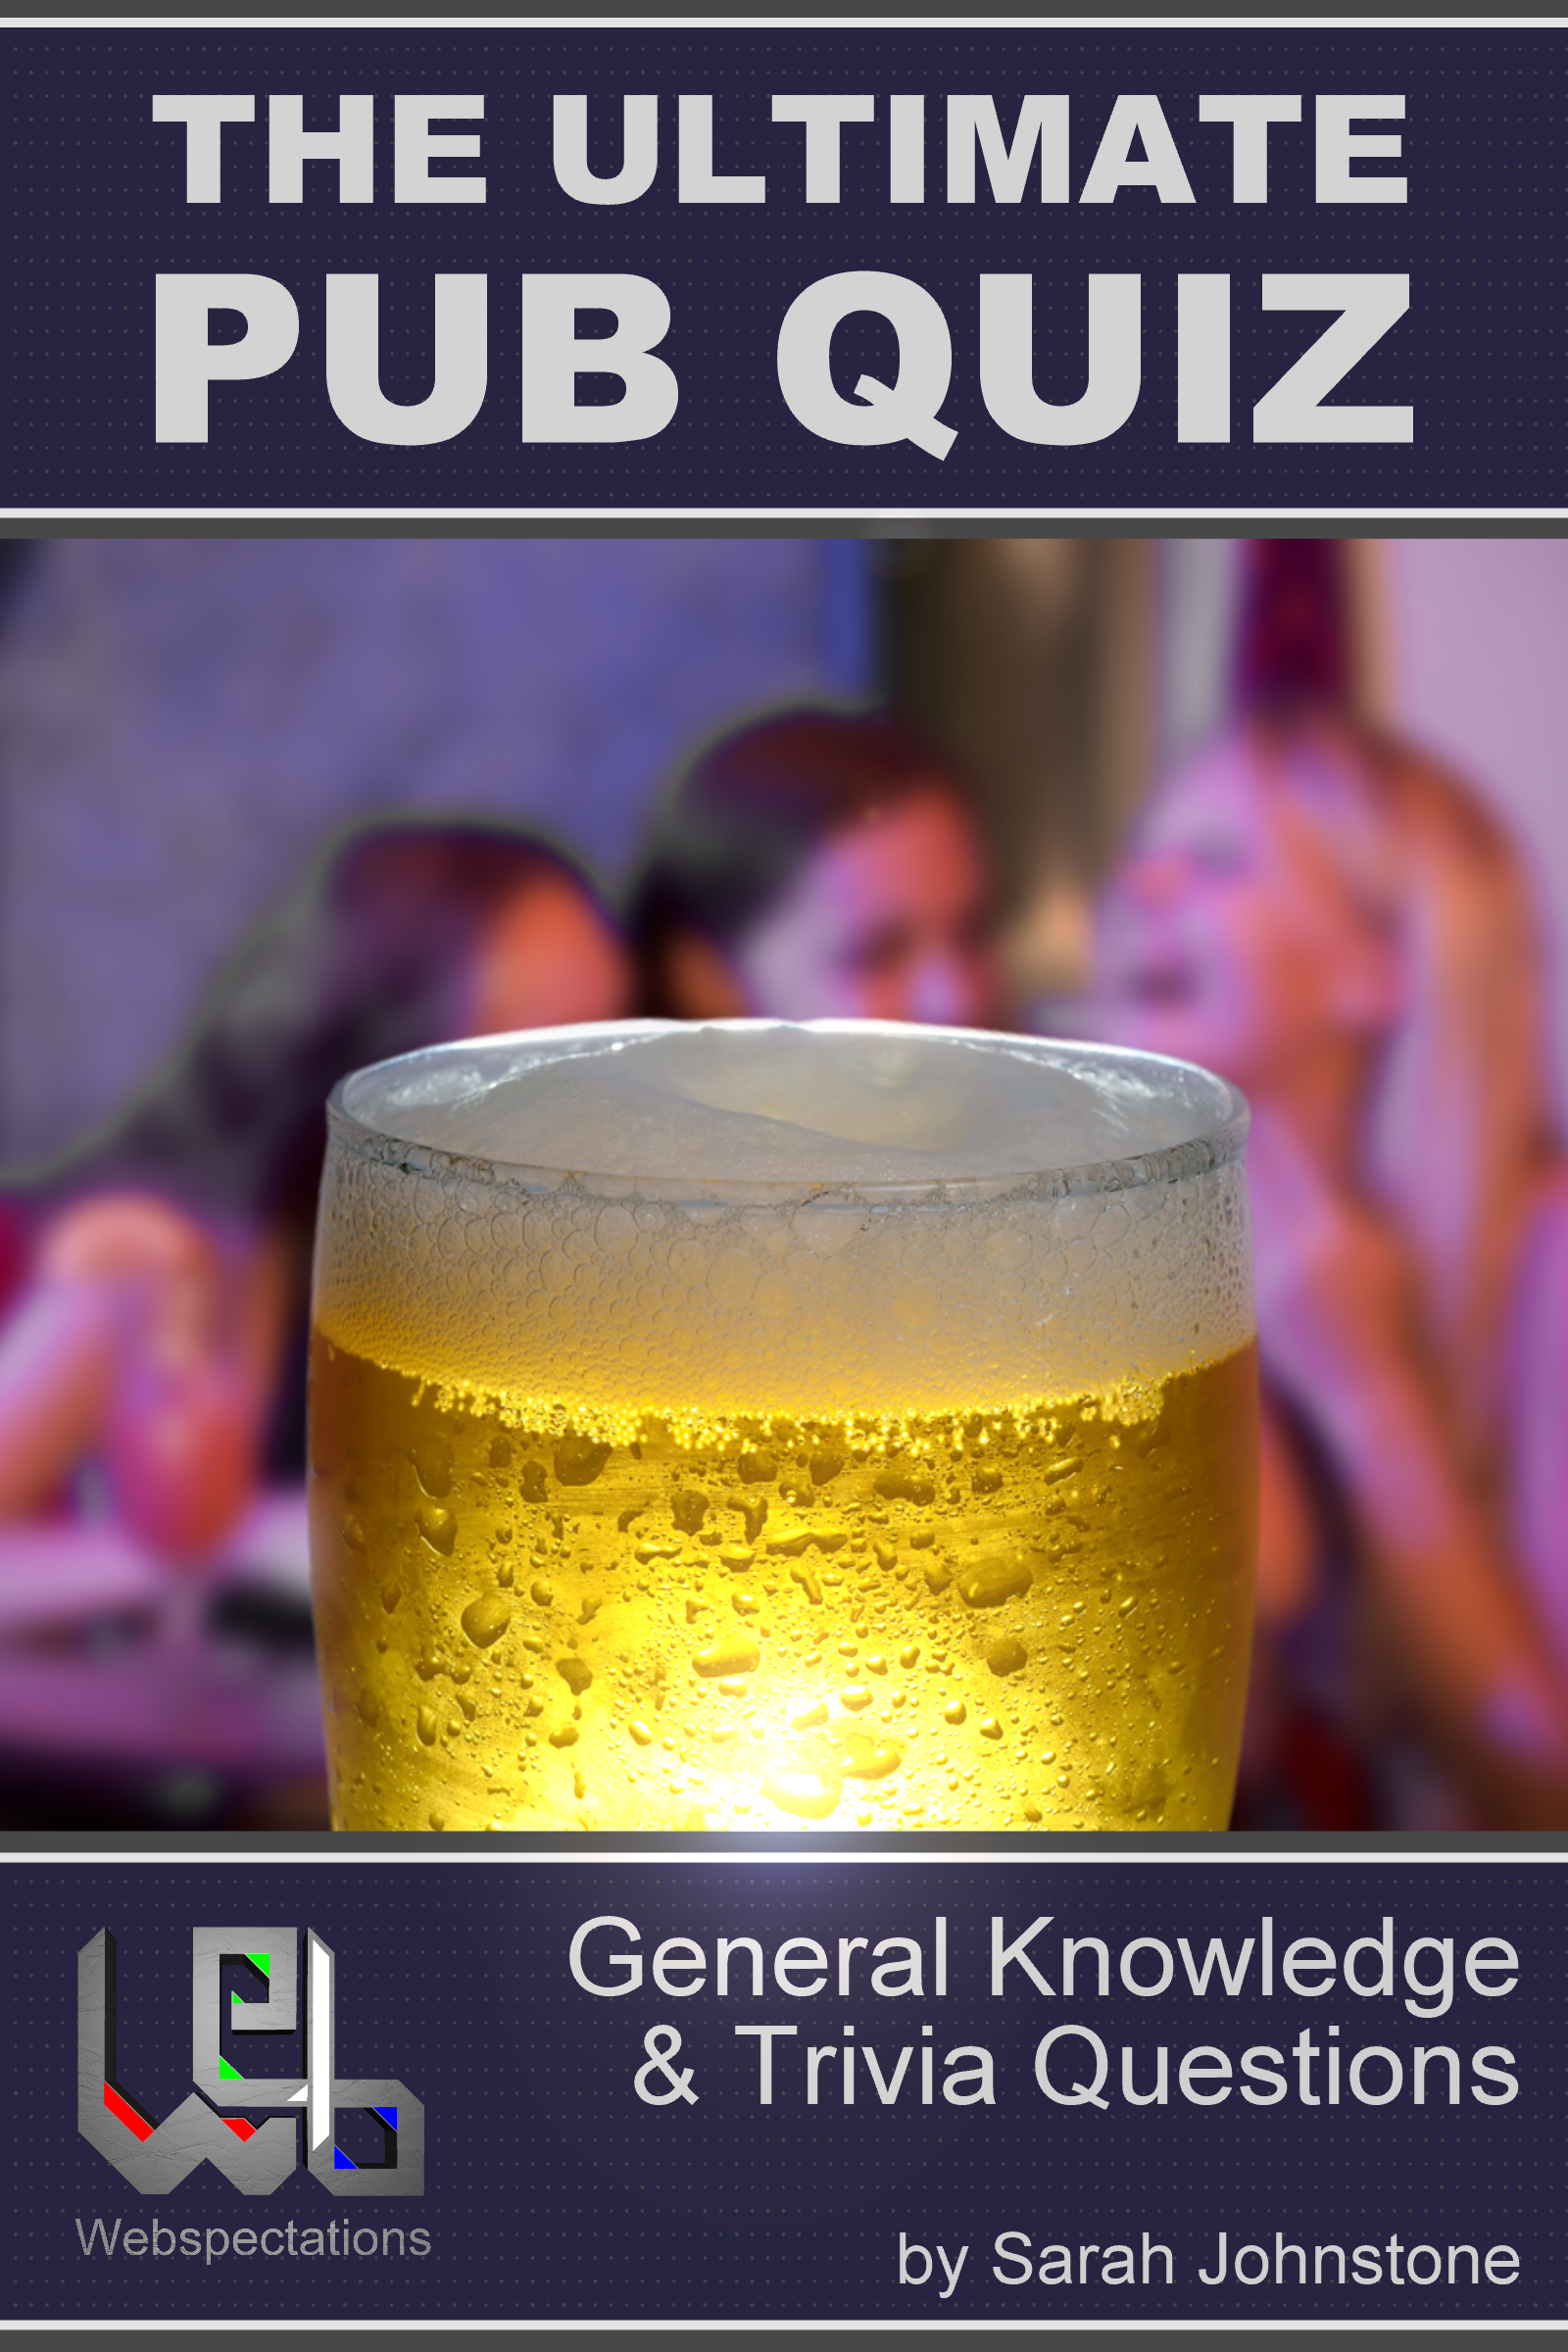 The Ultimate Pub Quiz - General Knowledge and Trivia Questions, an Ebook by  Sarah Johnstone